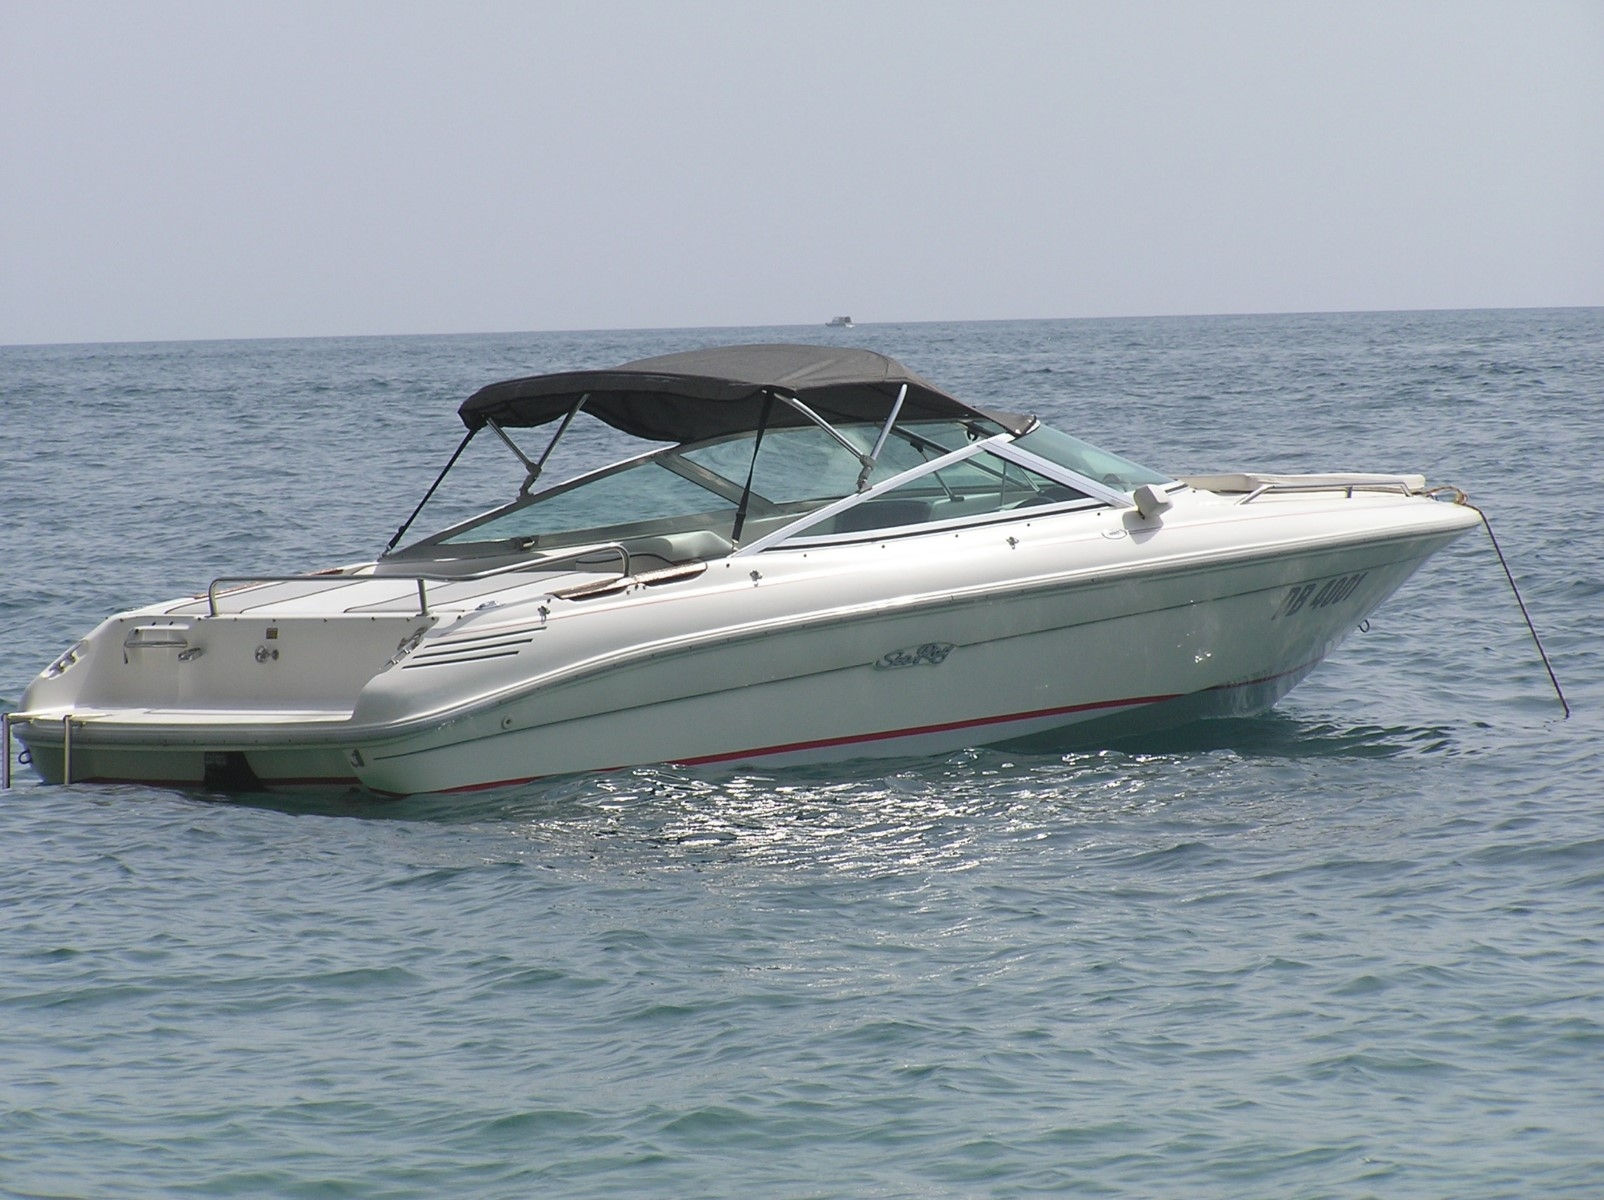 Snooky Tours | Boat and Guided Tours Dubrovnik | Boat Rental